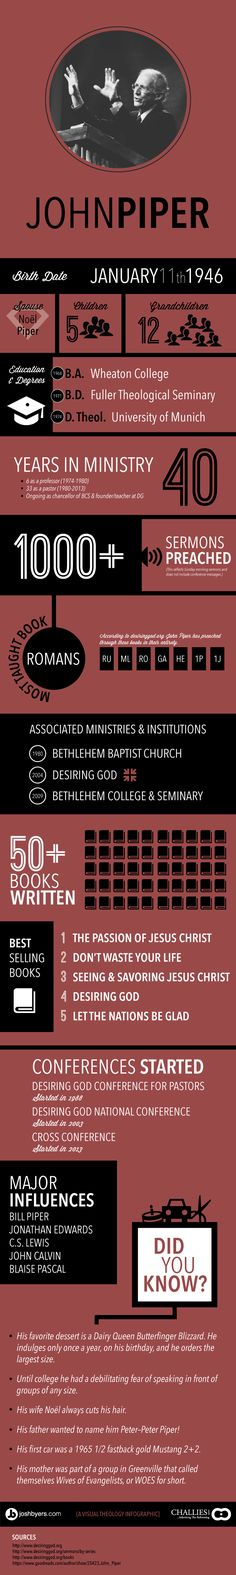 John Piper: The Infographic